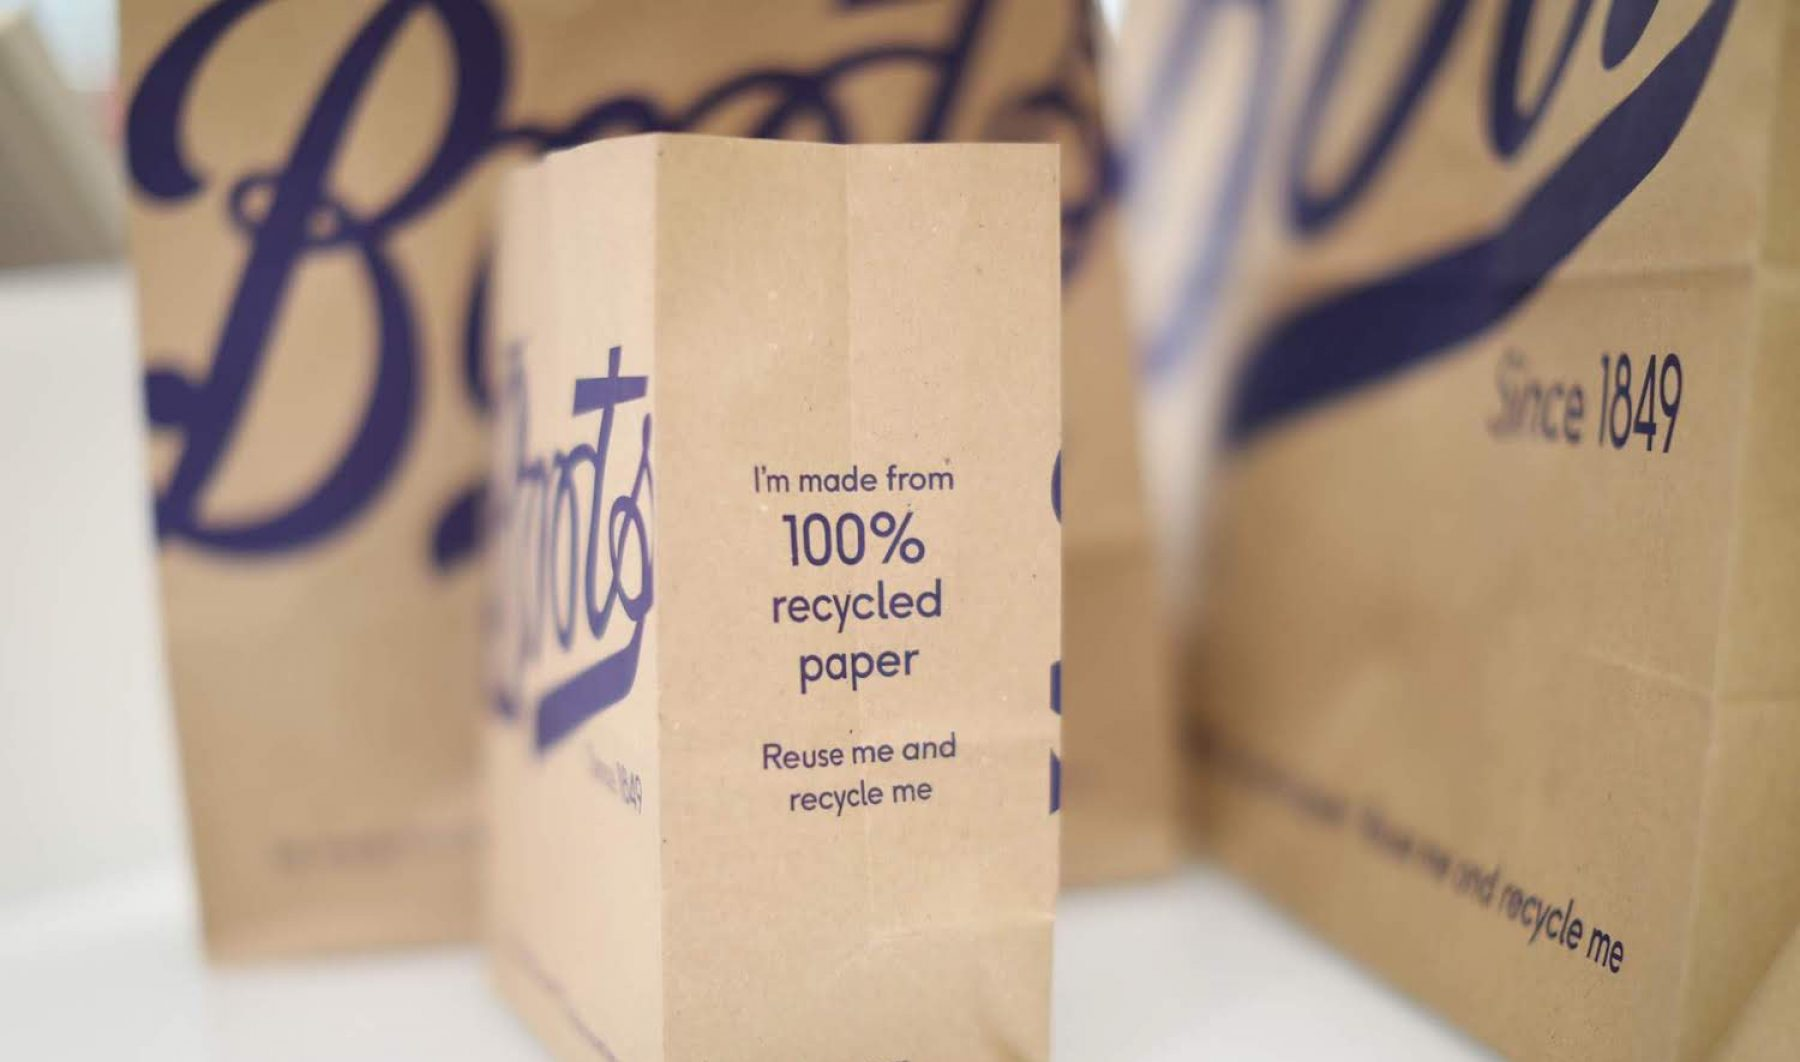 Image for Boots to replace plastic carrier bags with paper bags